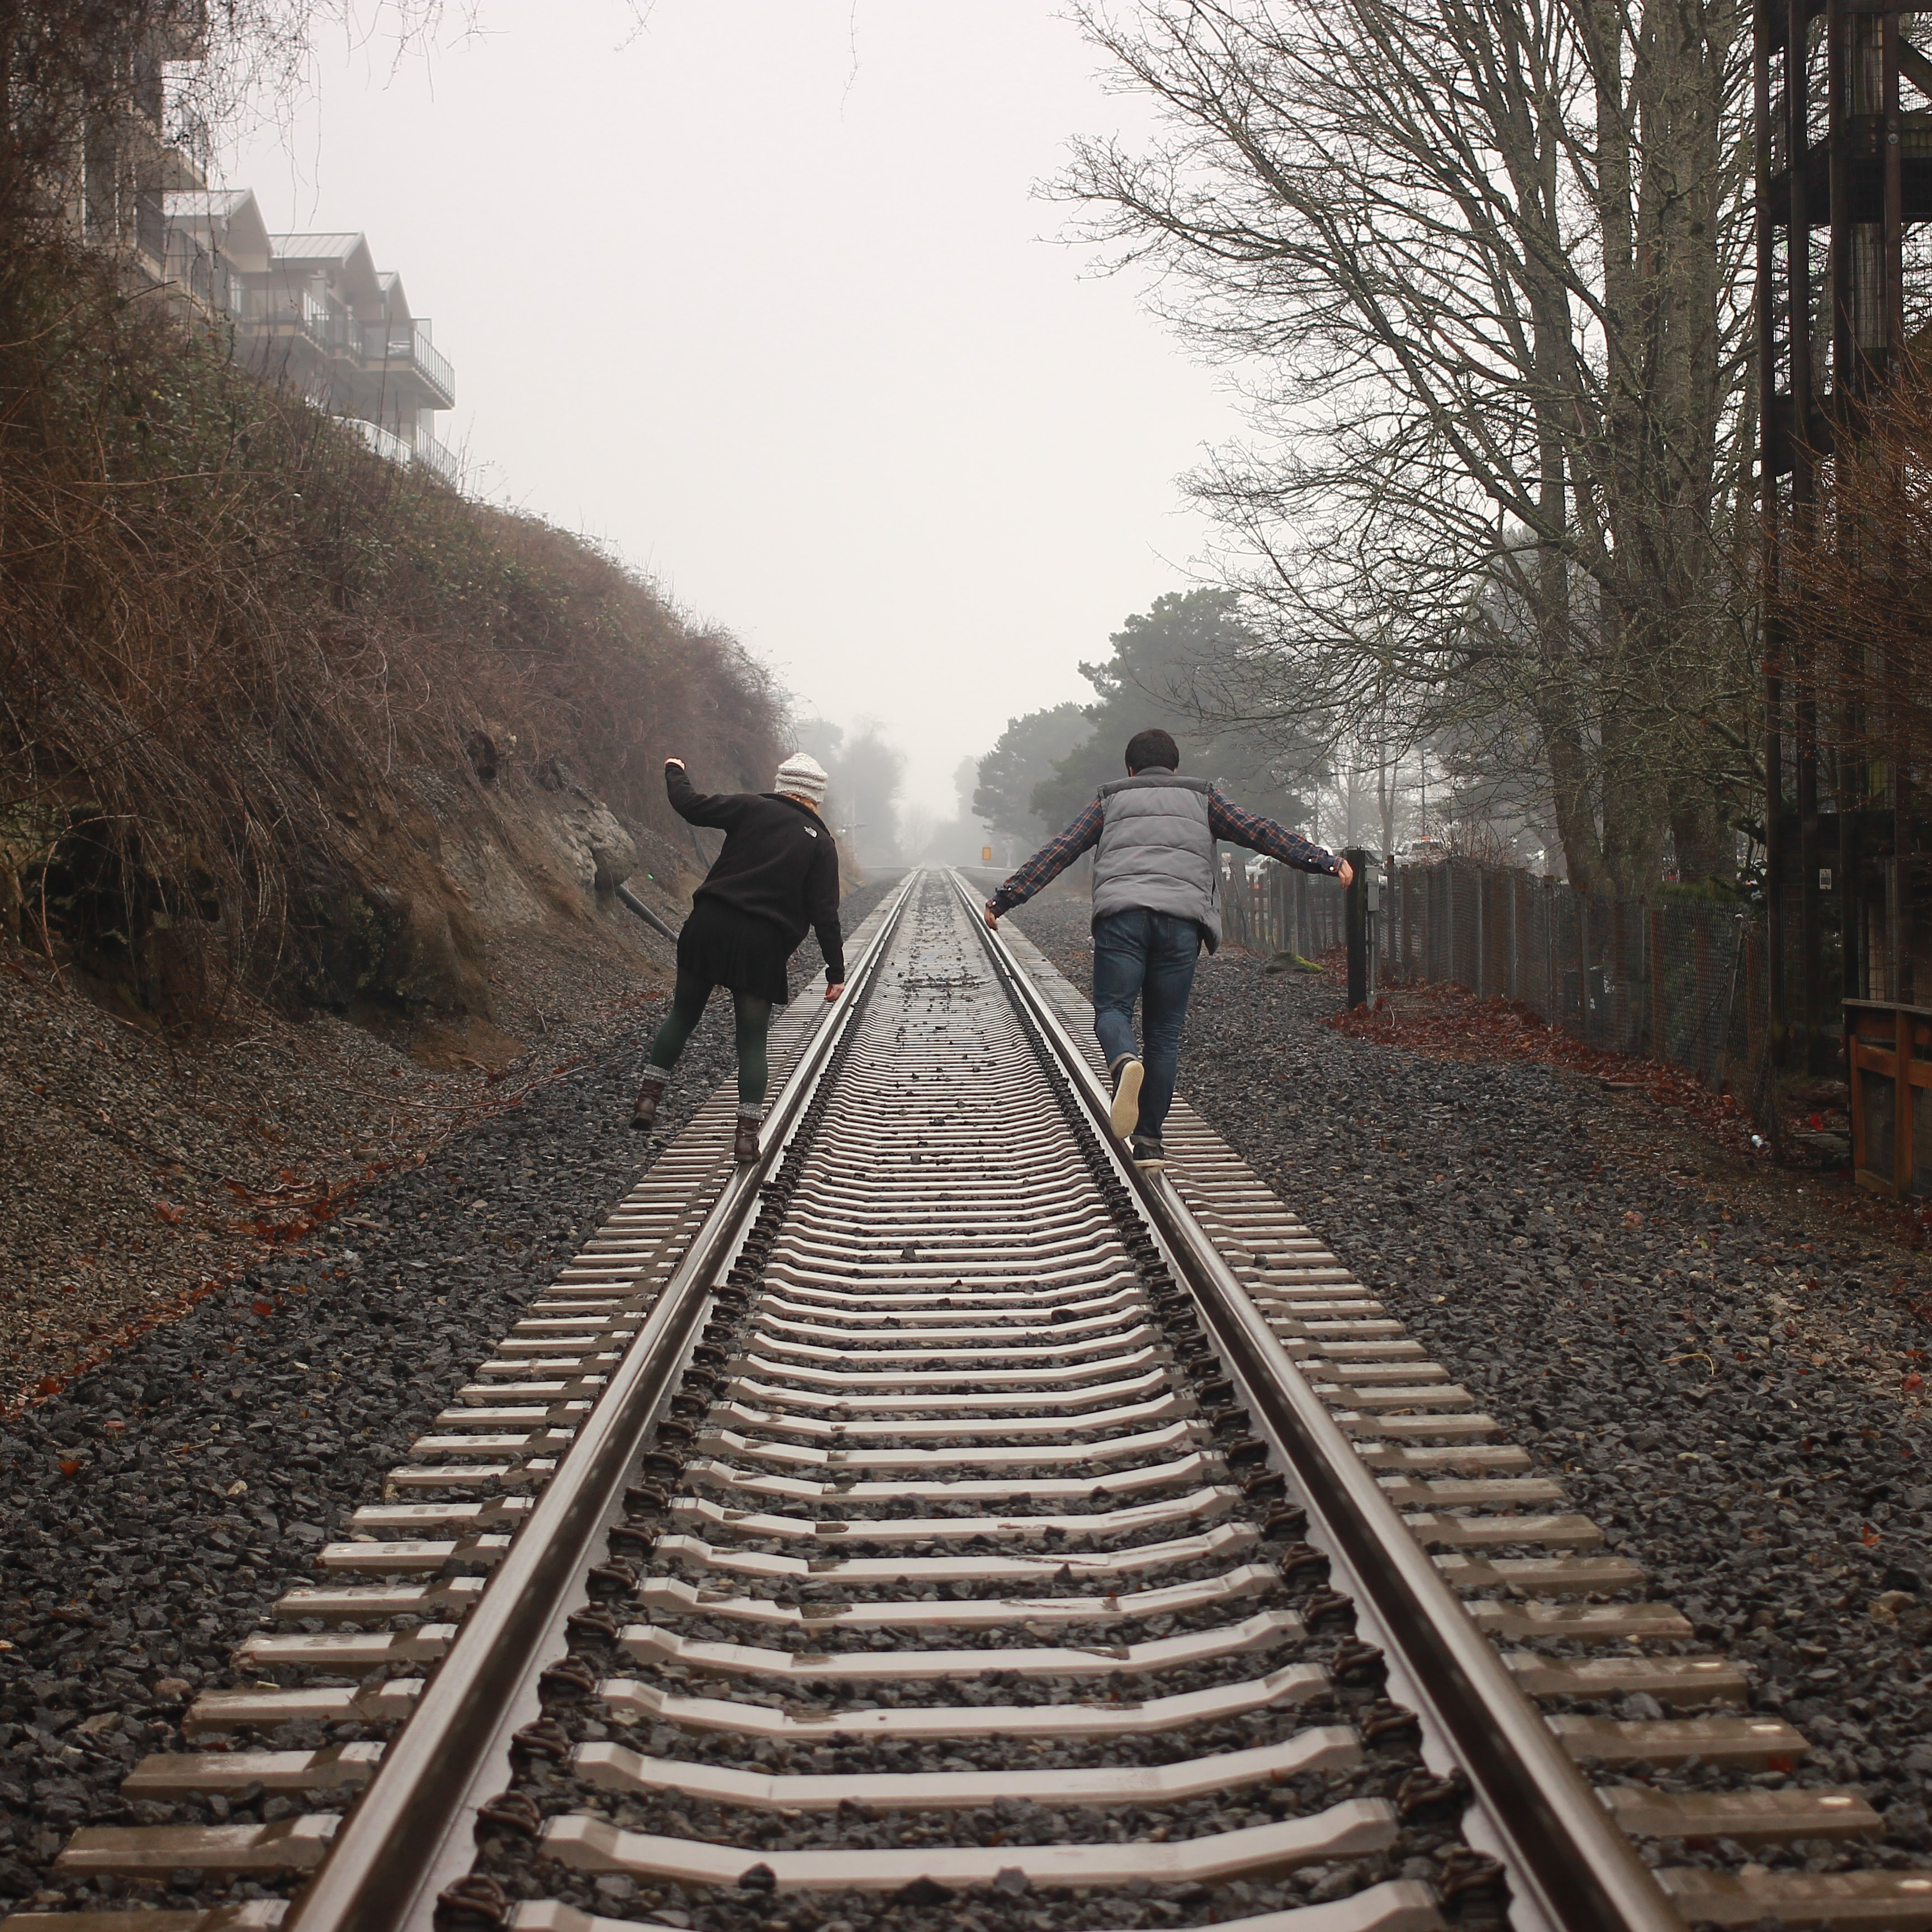 Two people balancing on the rails of a train track during a foggy day